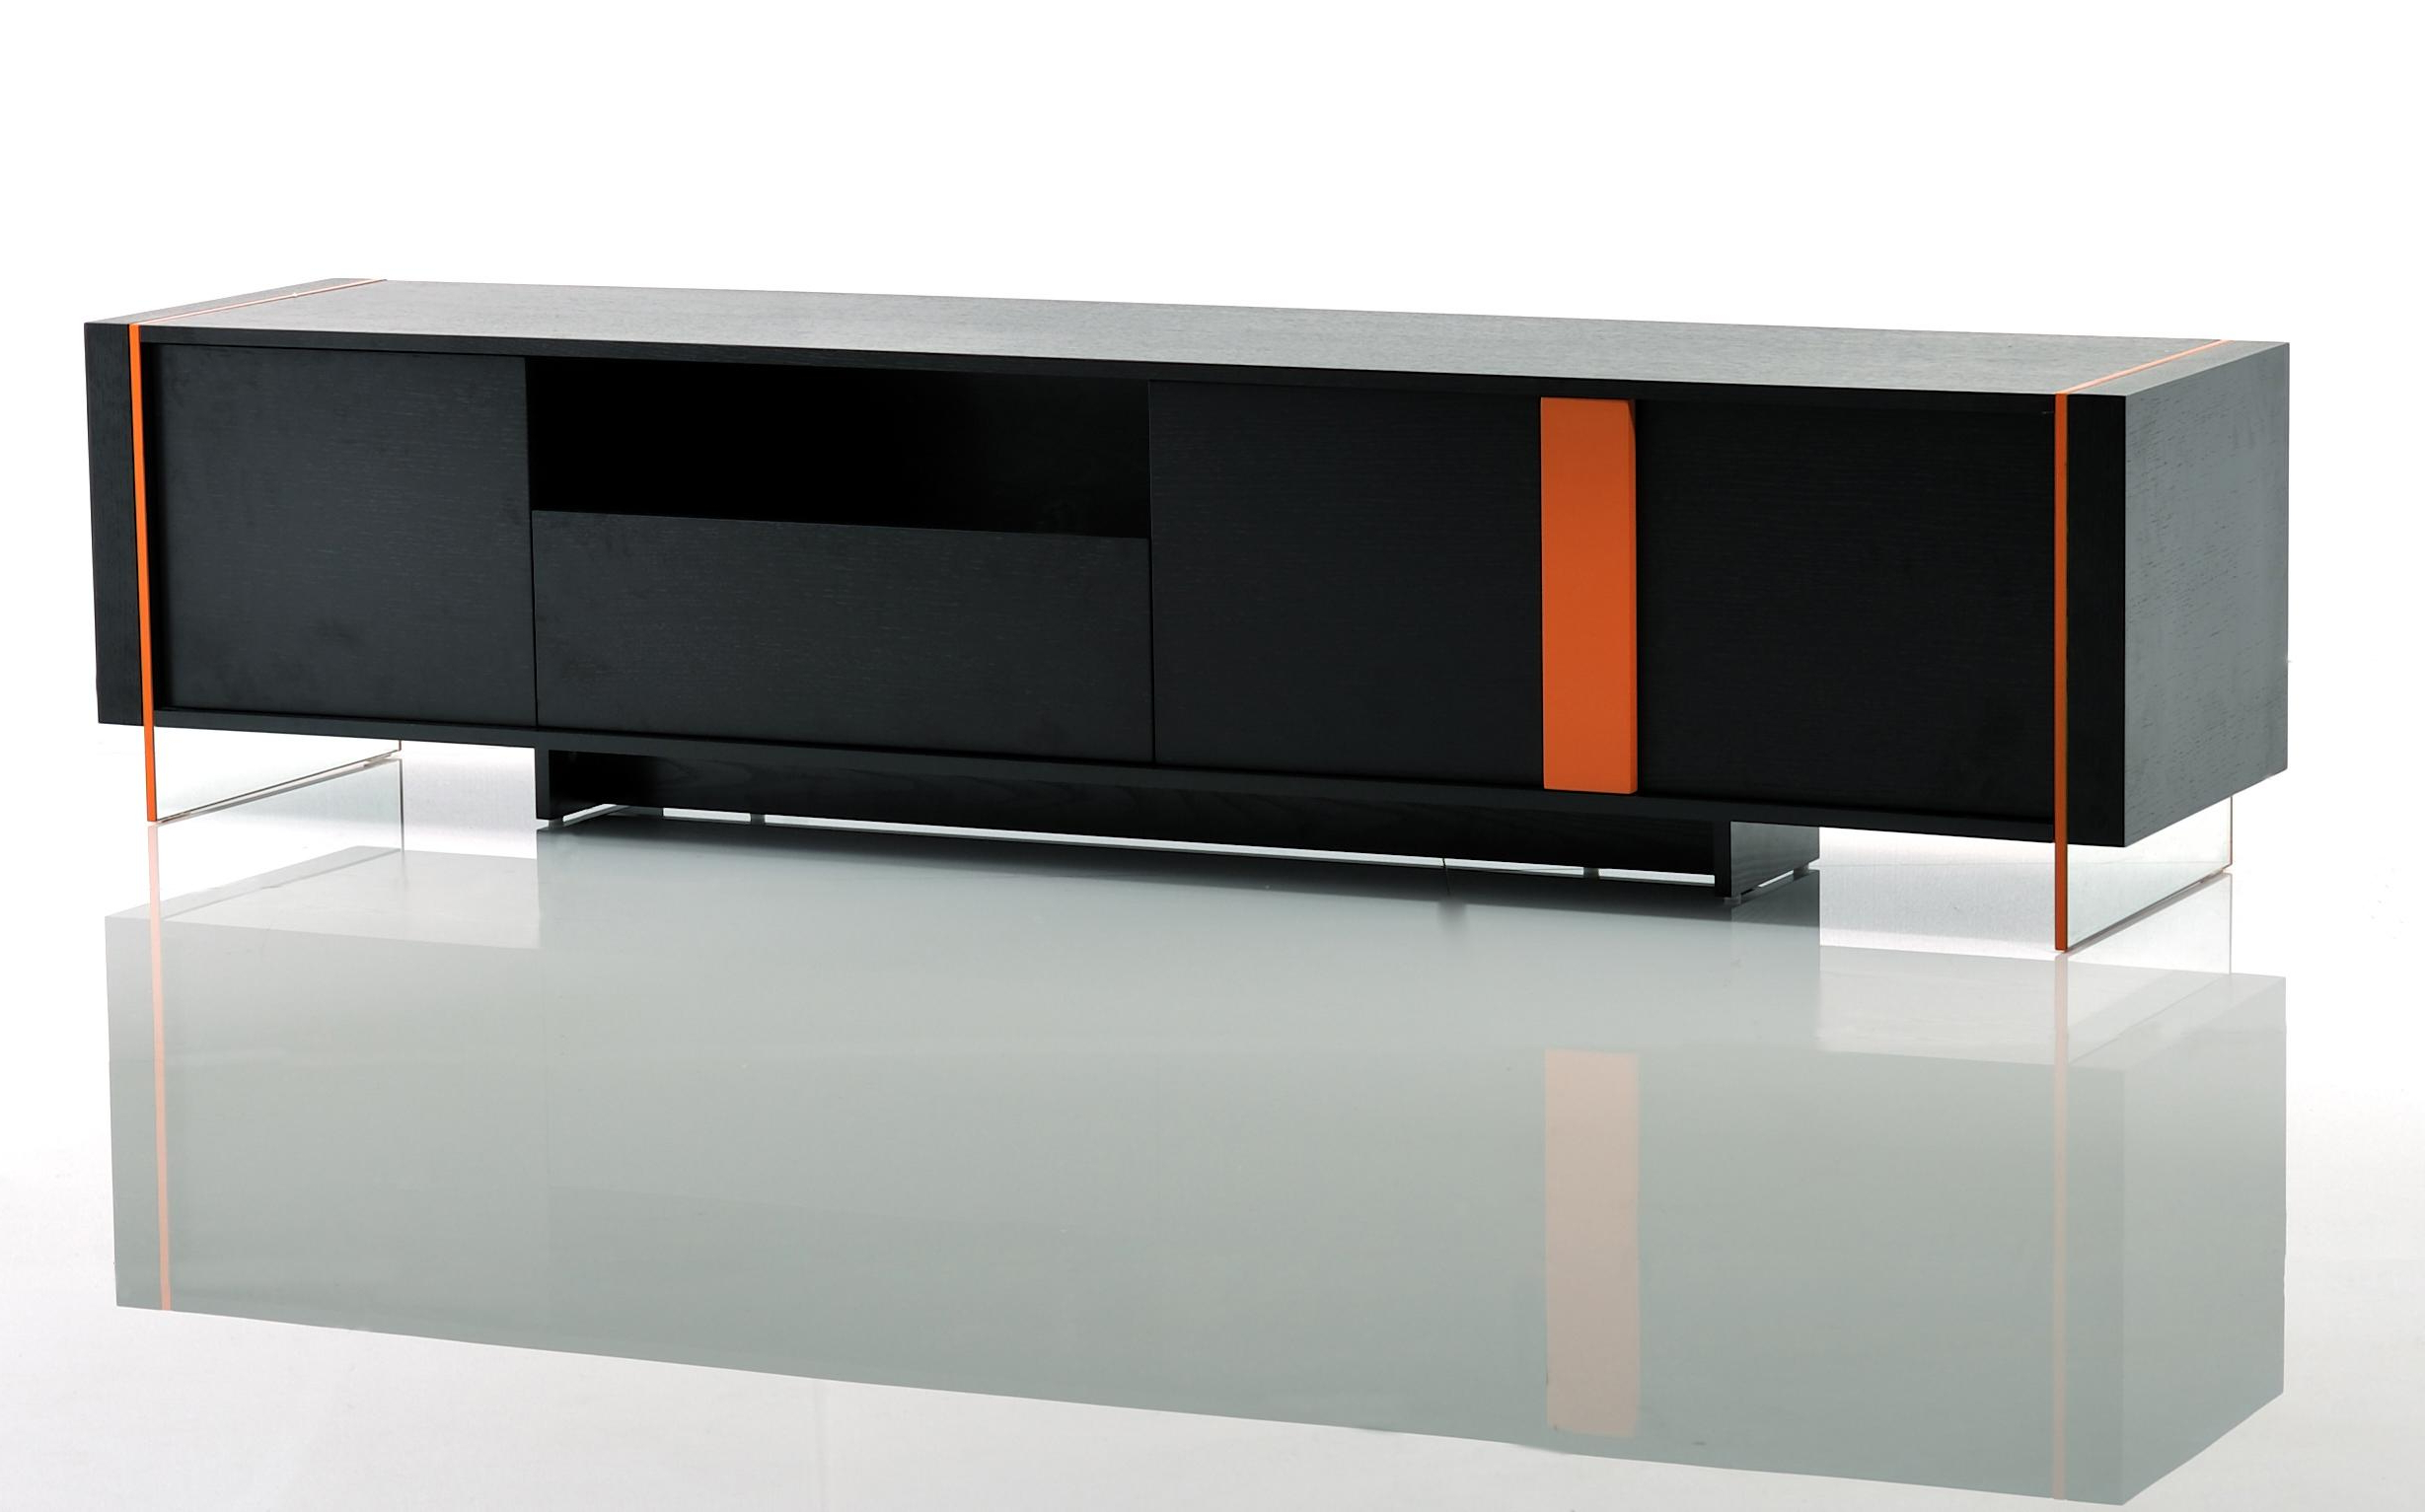 Contemporary Tv Cabinets For Flat Screens Pertaining To Well Known Tv Stands For Flat Screens Modern Cabinet Designs Living Room White (View 11 of 20)